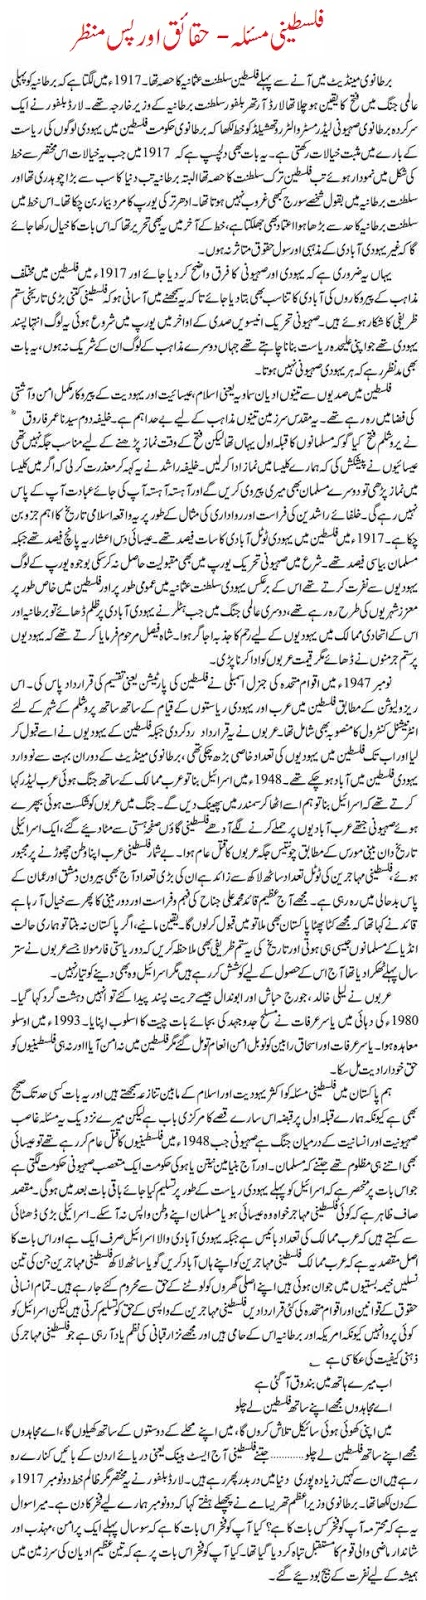 Urdu Kahani Palestine Issue In Urdu  Essay On Israeli Palestinian  Israeli Palestinian Conflict In Urdu